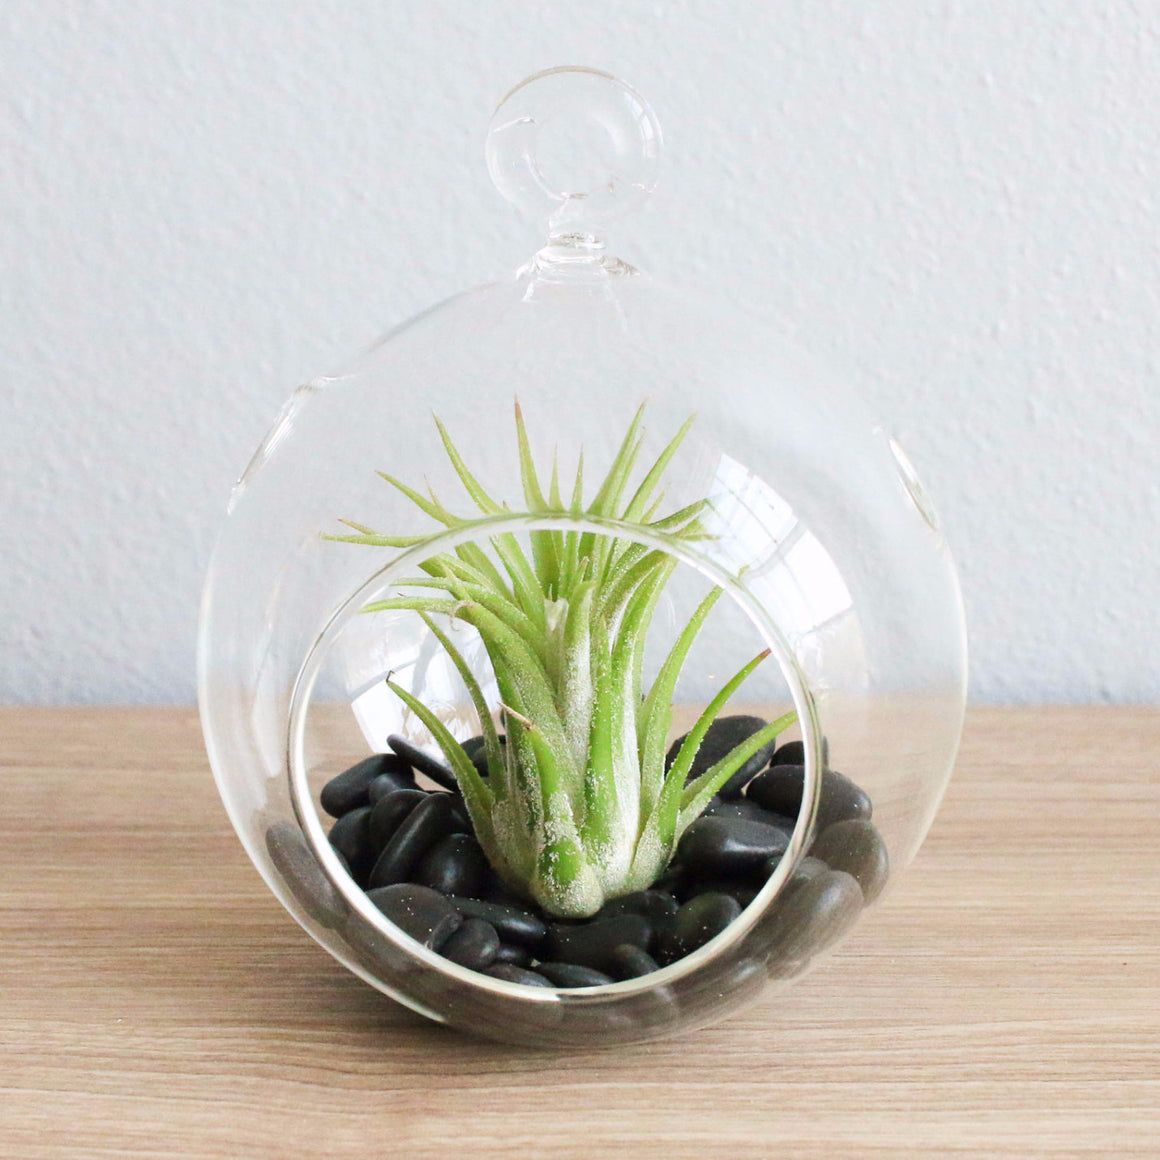 Design Air Plants Terrarium premium terrarium kits air plant supply co globe with flat bottom black stones